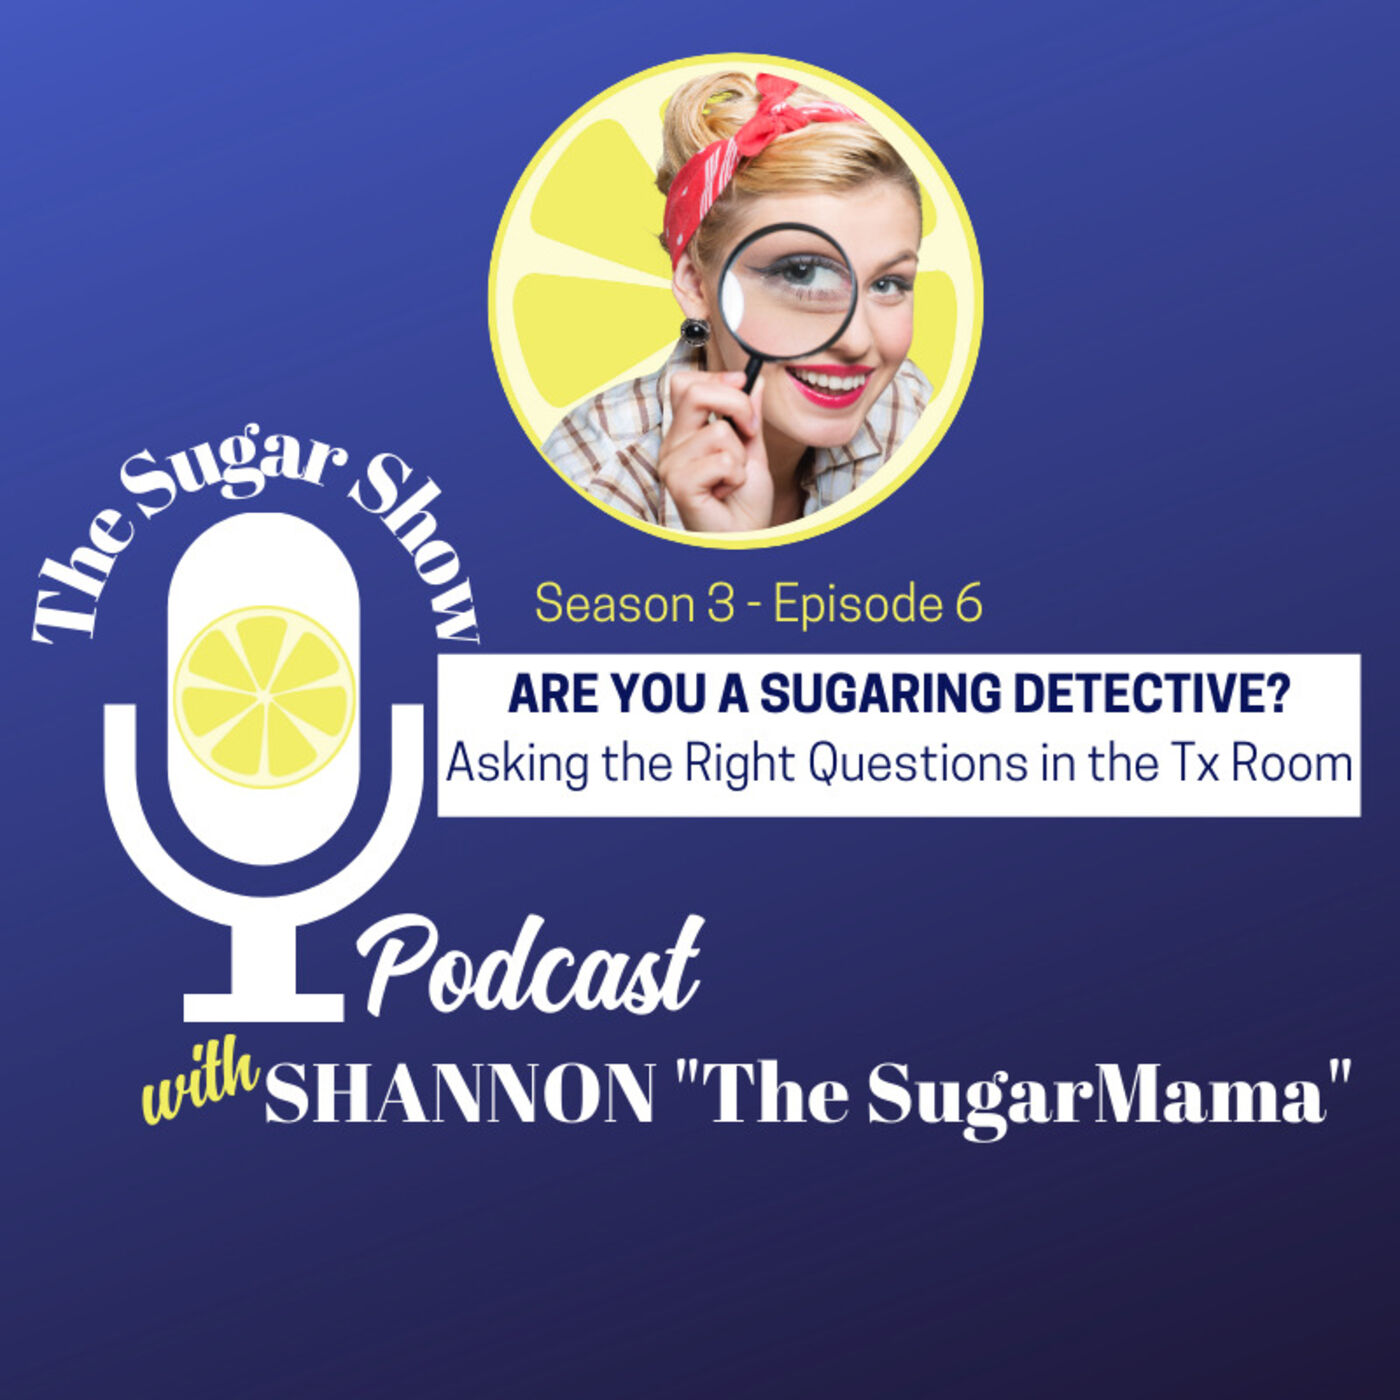 The Sugar Show: S3E6: Are you a Sugaring Detective? How to Ask the Right Questions in the Treatment Room